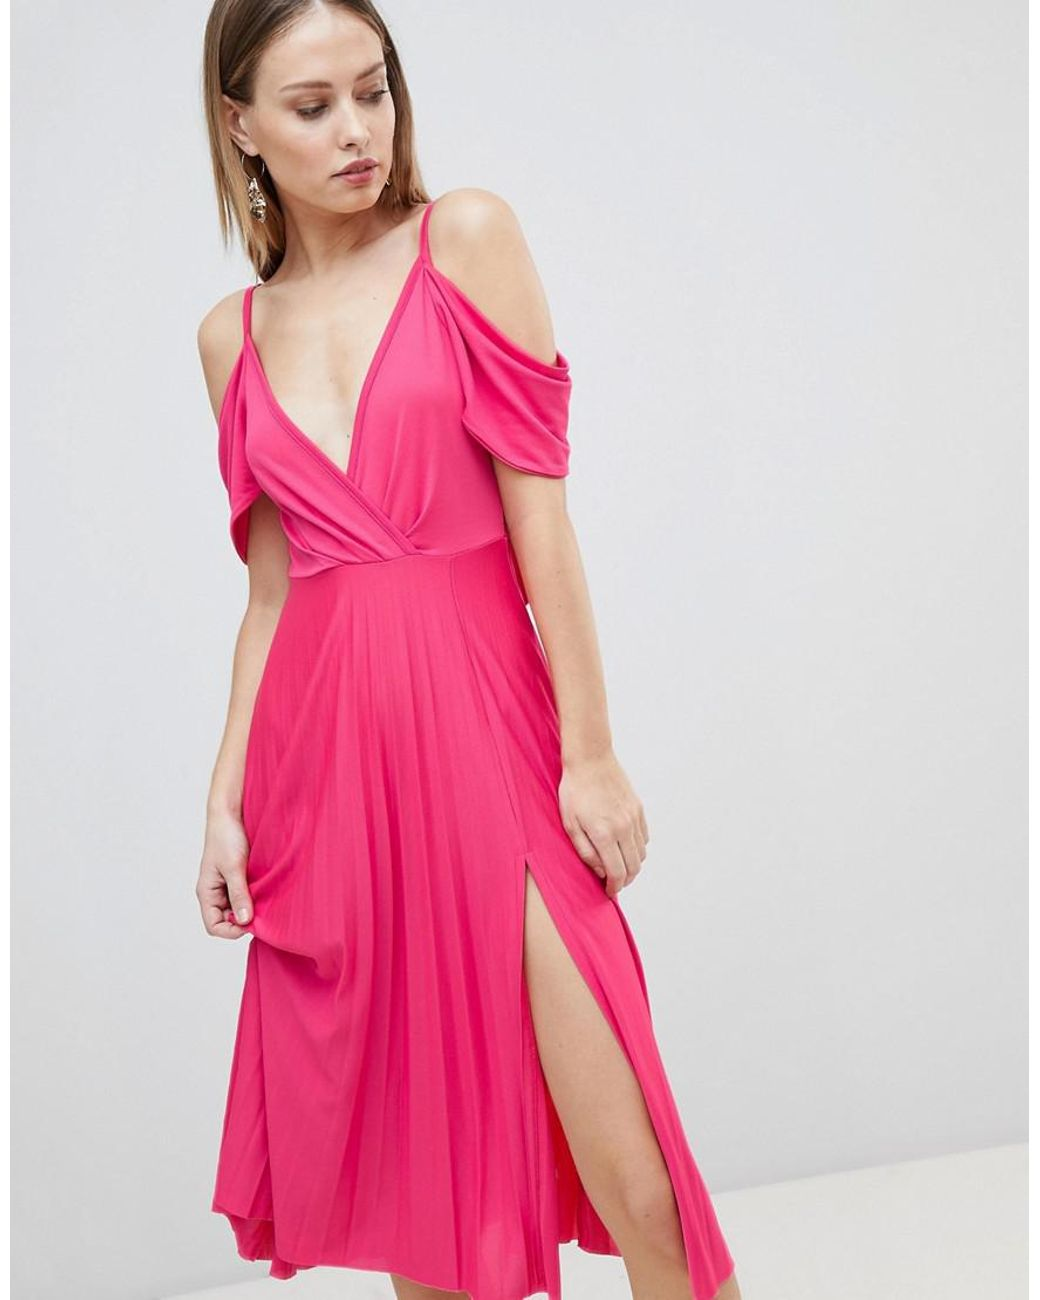 621c52e6ada7 ASOS Cold Shoulder Cowl Back Pleated Midi Dress in Pink - Lyst